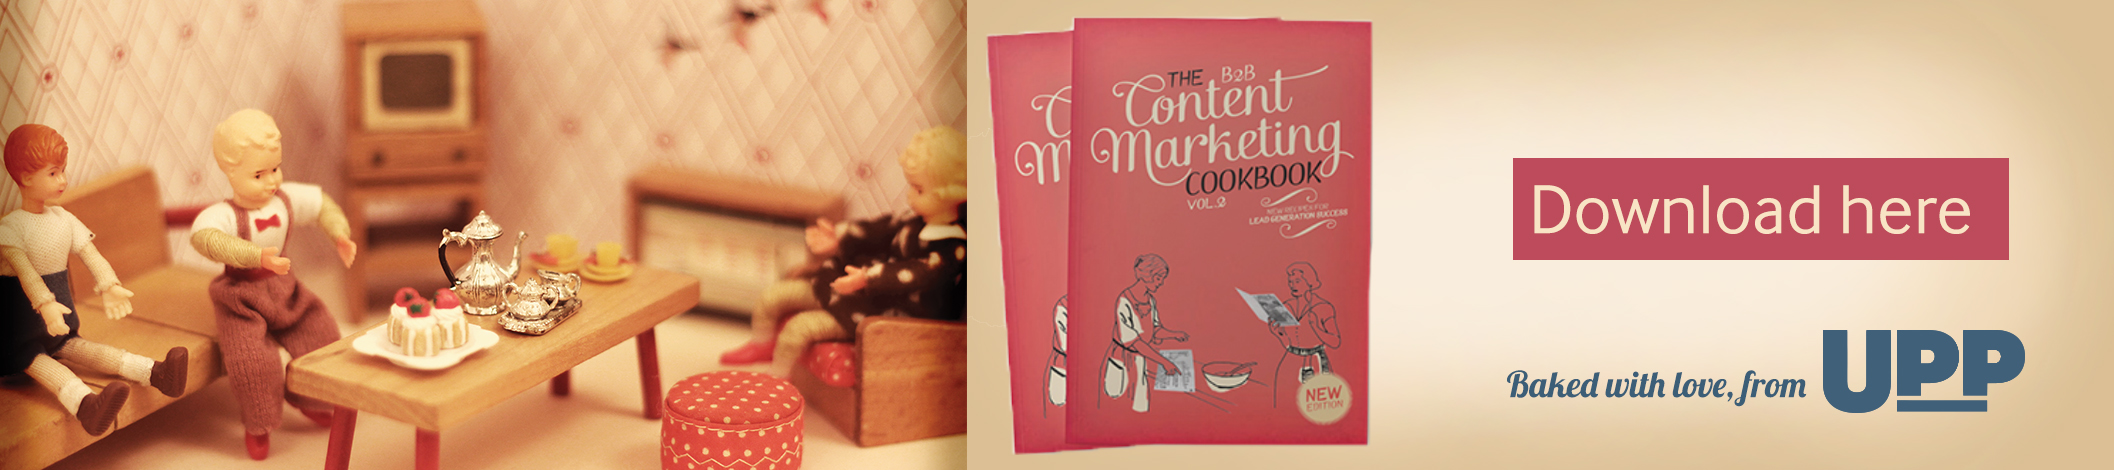 Content Marketing Cookbook CTA block